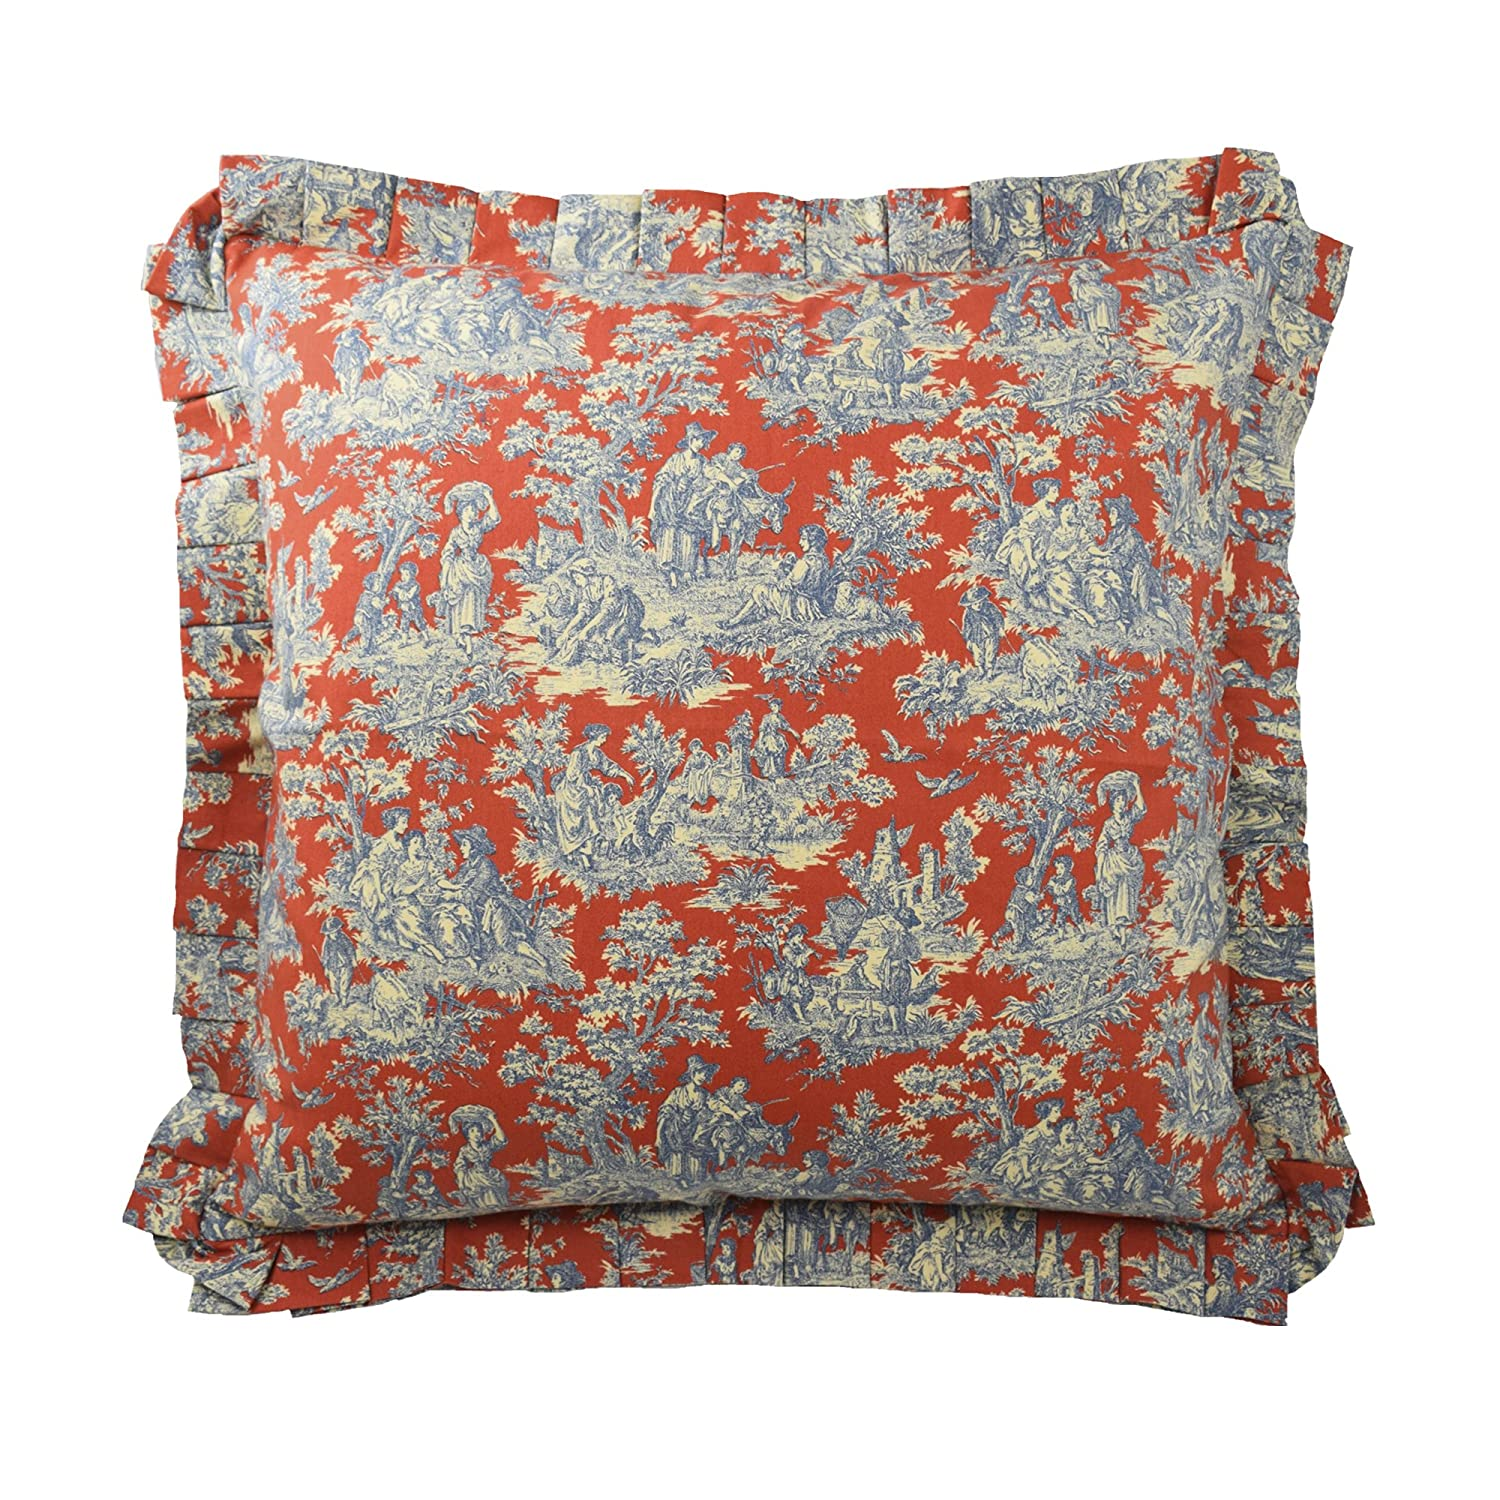 Waverly 14923026X026HTB Sanctuary Rose Euro Pillow Sham, Heritage Blue, 26x26 26x26 Ellery Homestyles